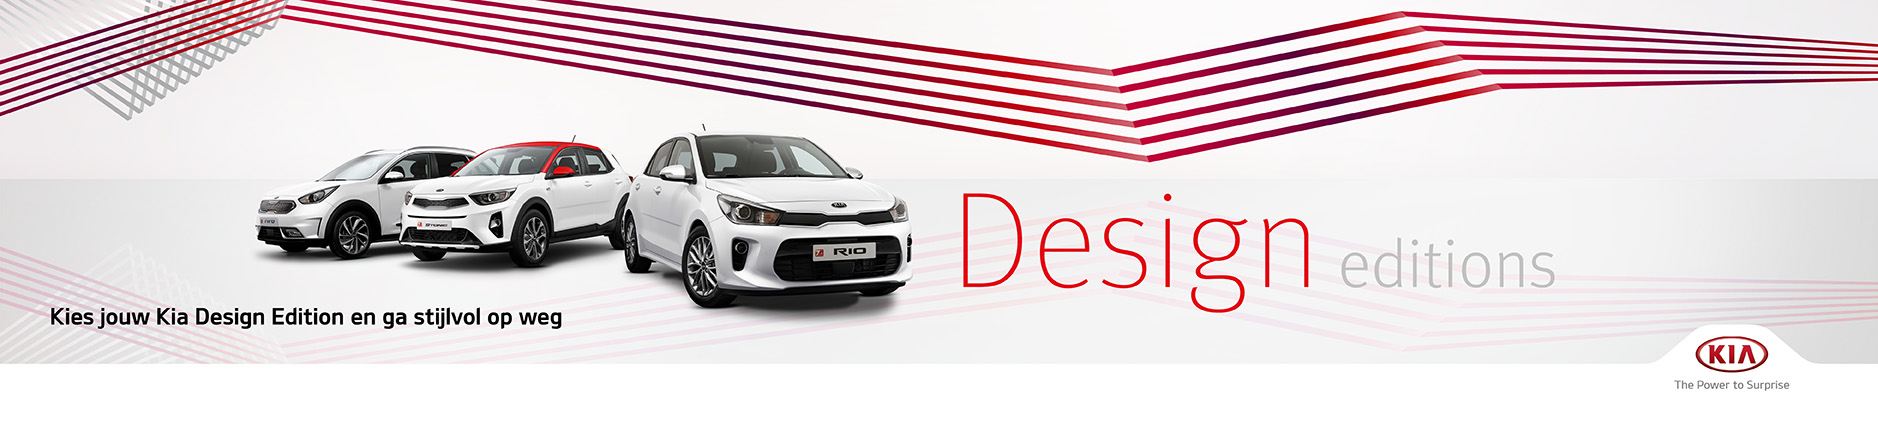 Kia Design Editions